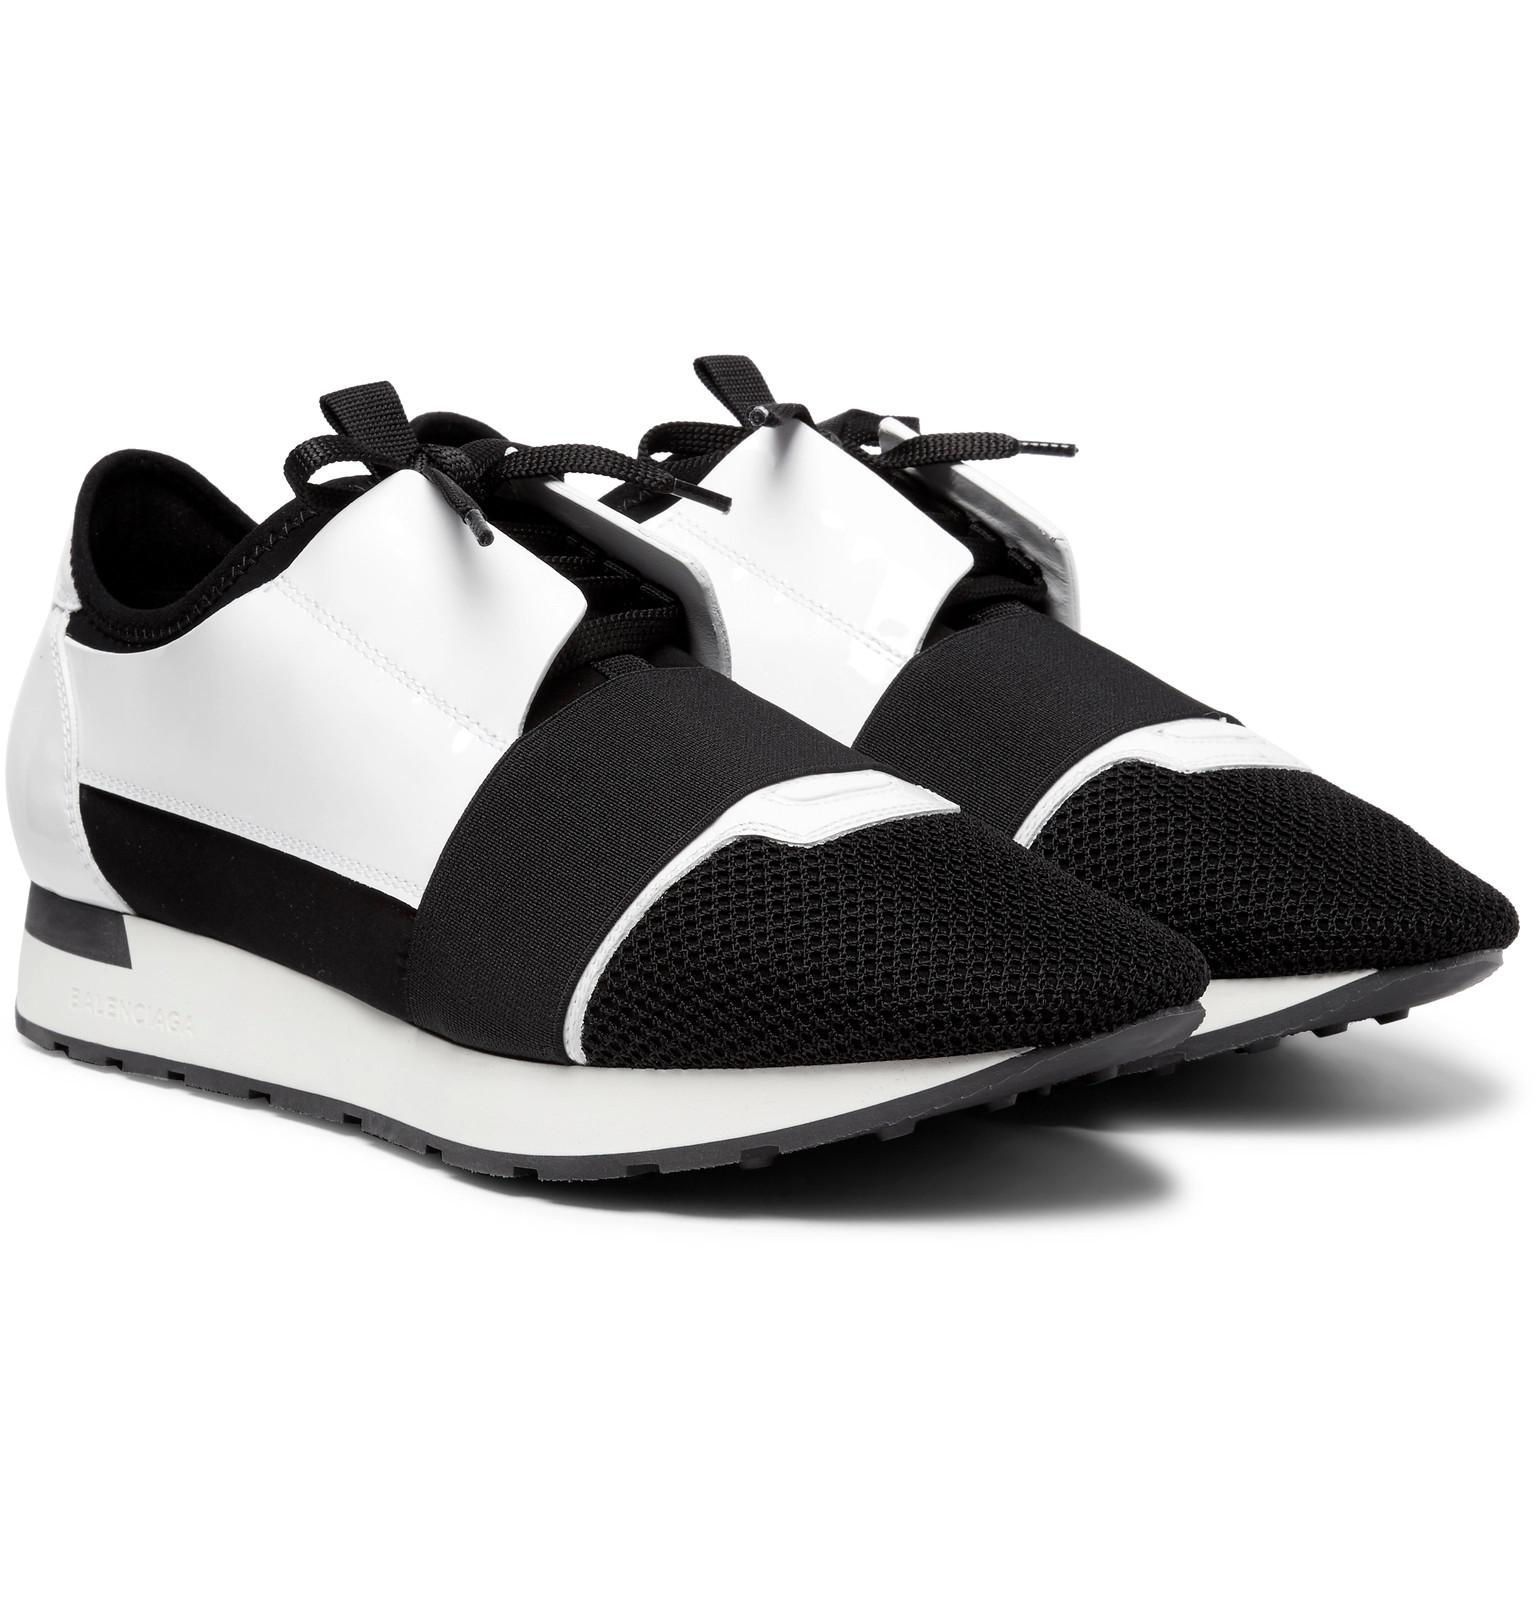 41613304a745 Lyst - Balenciaga Race Runner Patent-leather